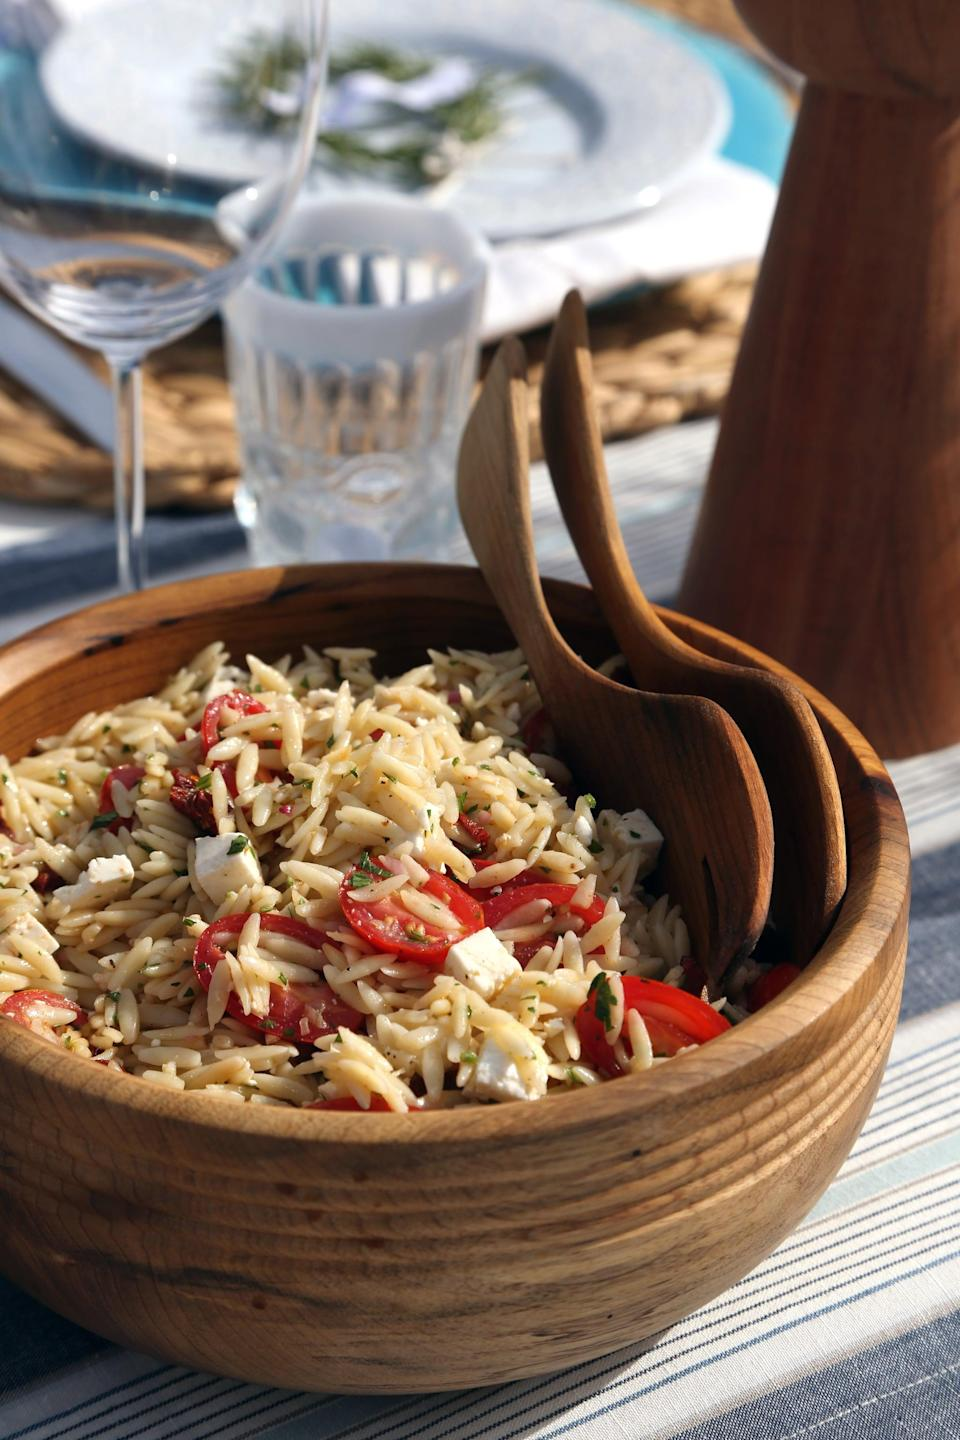 """<p>No, that's not rice - it's orzo, an Italian pasta that resembles rice. It cooks up quickly and absorbs vinaigrette and sauce while keeping its shape like no other, making it ideal for outdoor parties and picnics. This recipe calls for a variety of Mediterranean-influenced ingredients like fresh and sun-dried tomatoes, feta cheese, and olives. Take one bite, and it's almost like you're vacationing on a Grecian isle. Almost.</p> <p><strong>Get the recipe:</strong> <a href=""""https://www.popsugar.com/food/Orzo-Pasta-Salad-Recipe-3470084"""" class=""""link rapid-noclick-resp"""" rel=""""nofollow noopener"""" target=""""_blank"""" data-ylk=""""slk:Mediterranean orzo pasta salad"""">Mediterranean orzo pasta salad</a></p>"""